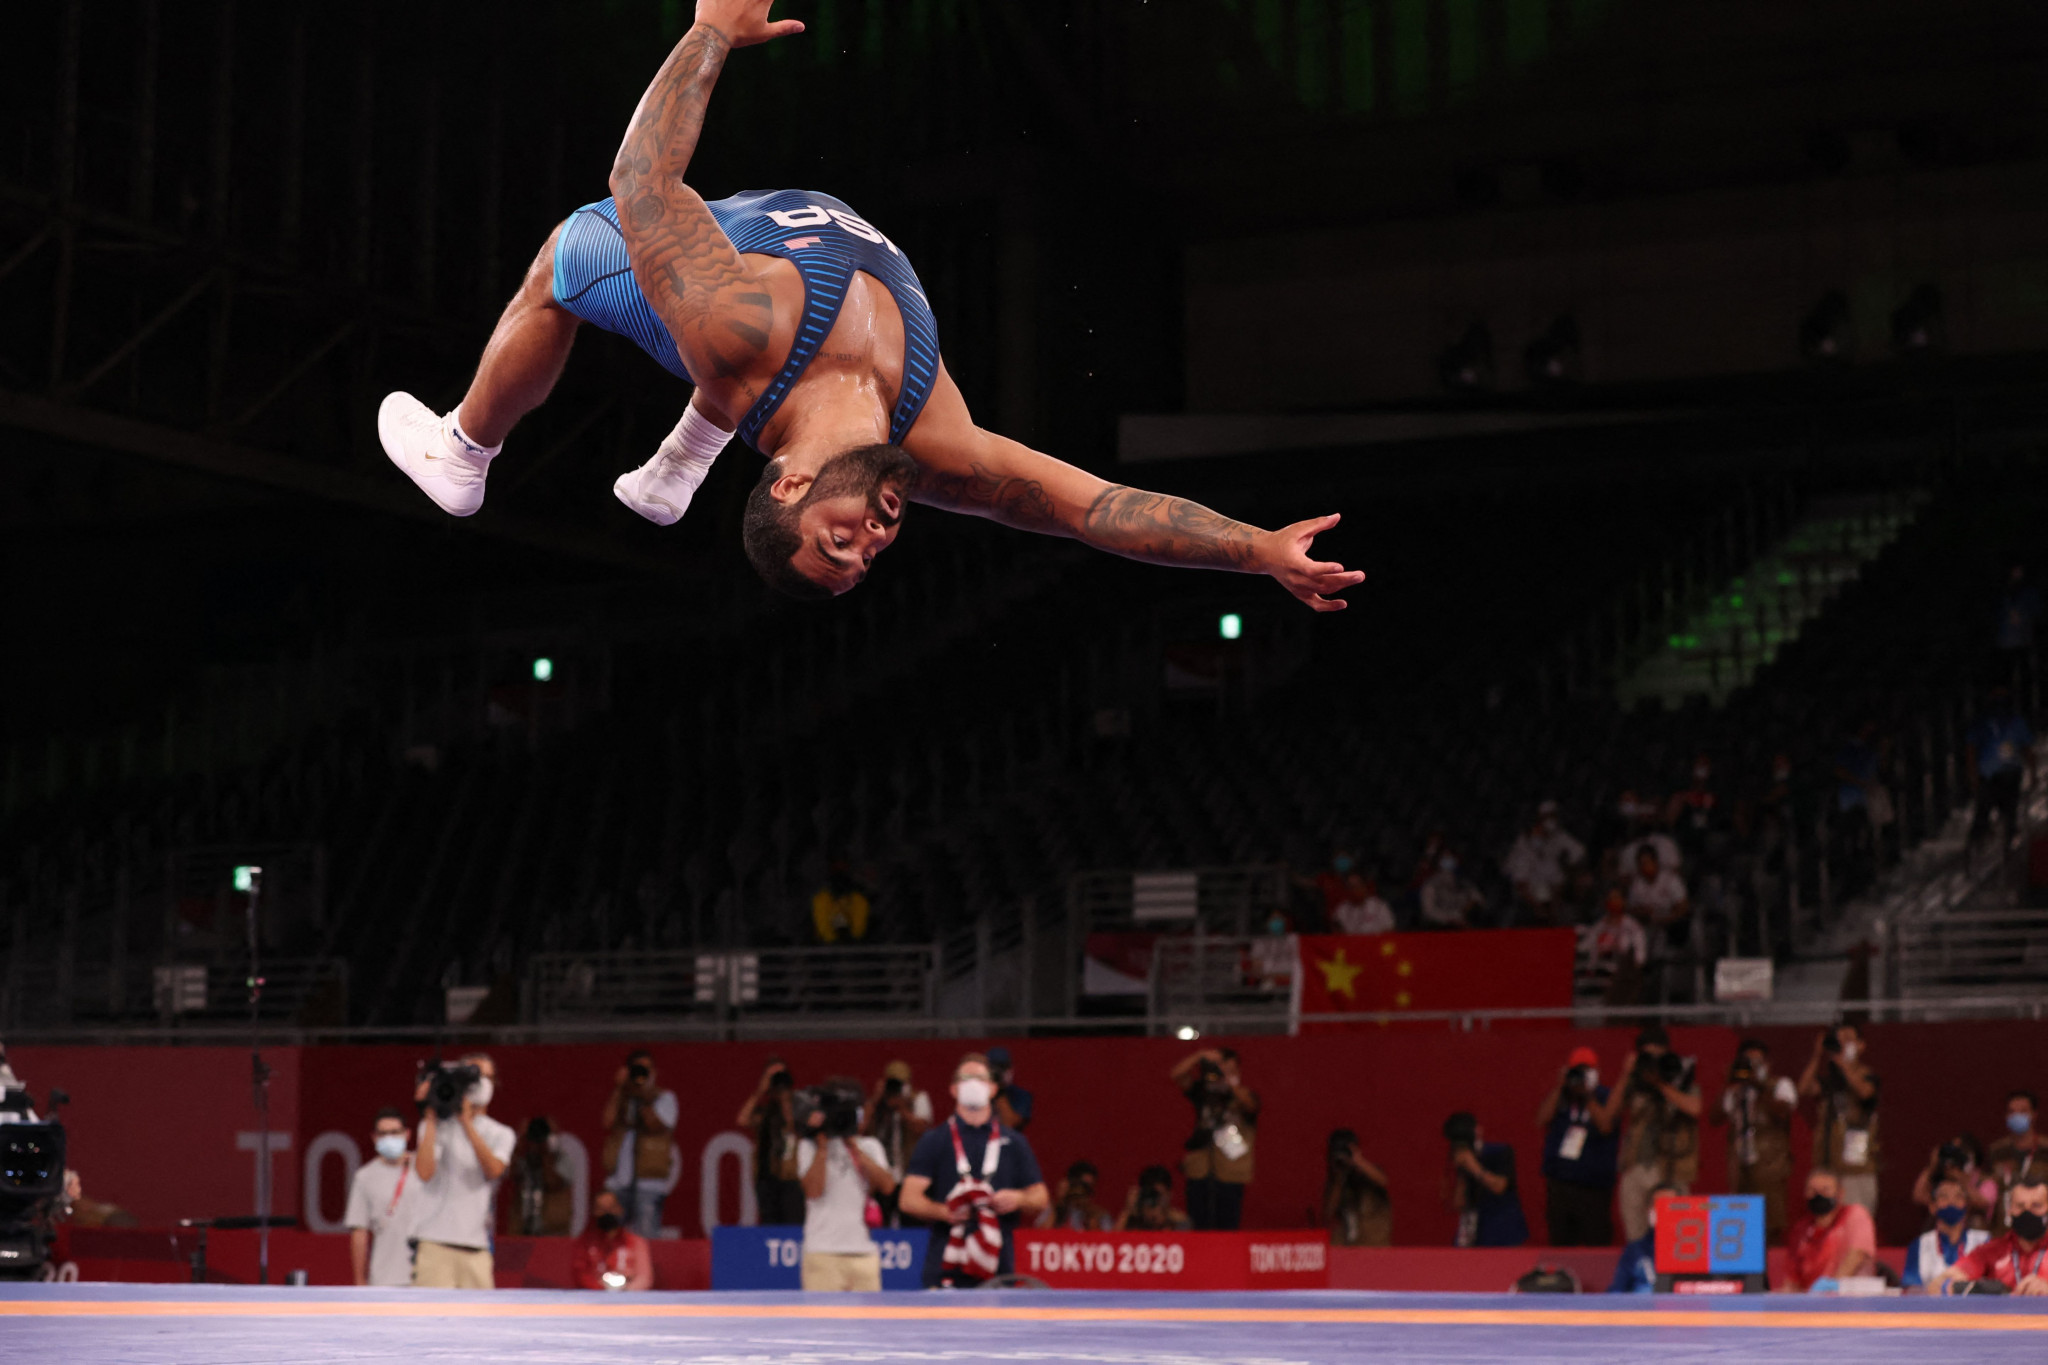 Steveson strikes in final second to win dramatic Olympic wrestling gold